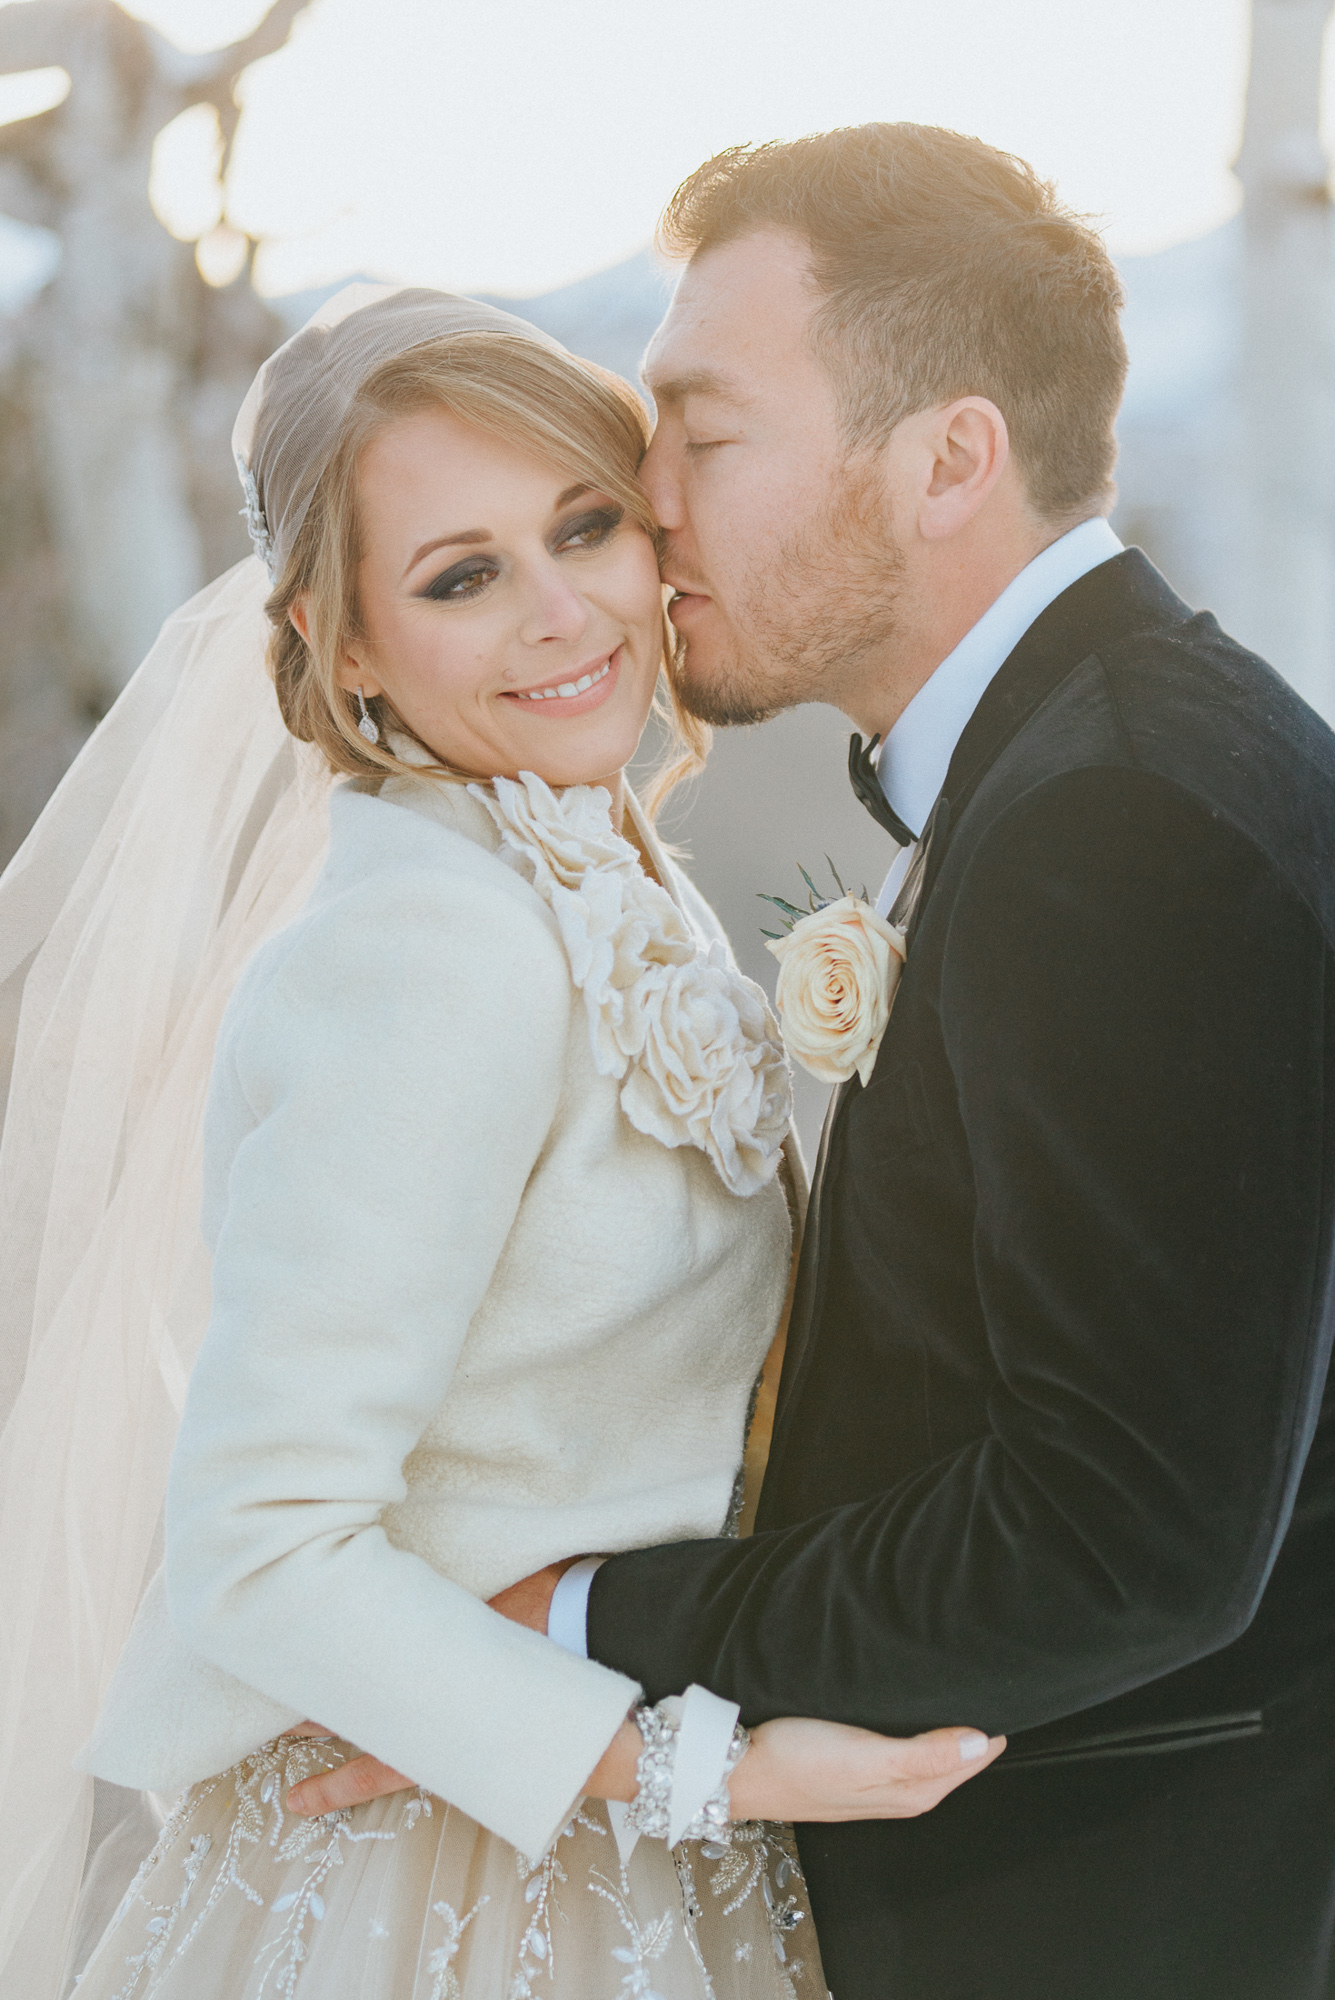 golden hour kiss bride wedding snow aspen